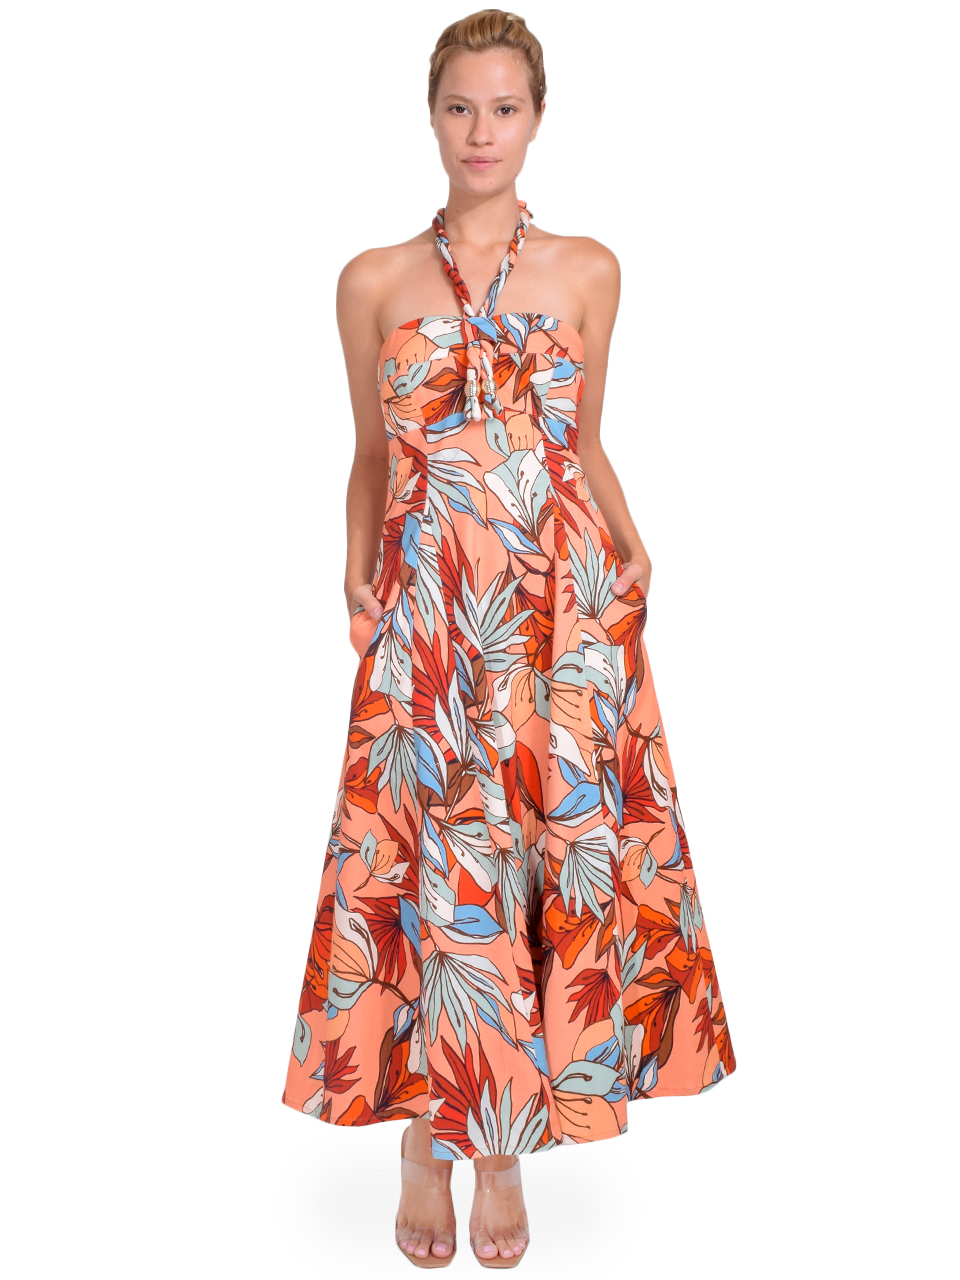 NICHOLAS Tina Dress in Tarama Deco Floral Front View  X1https://cdn11.bigcommerce.com/s-3wu6n/products/33362/images/110259/178__09797.1598306023.244.365.jpg?c=2X2